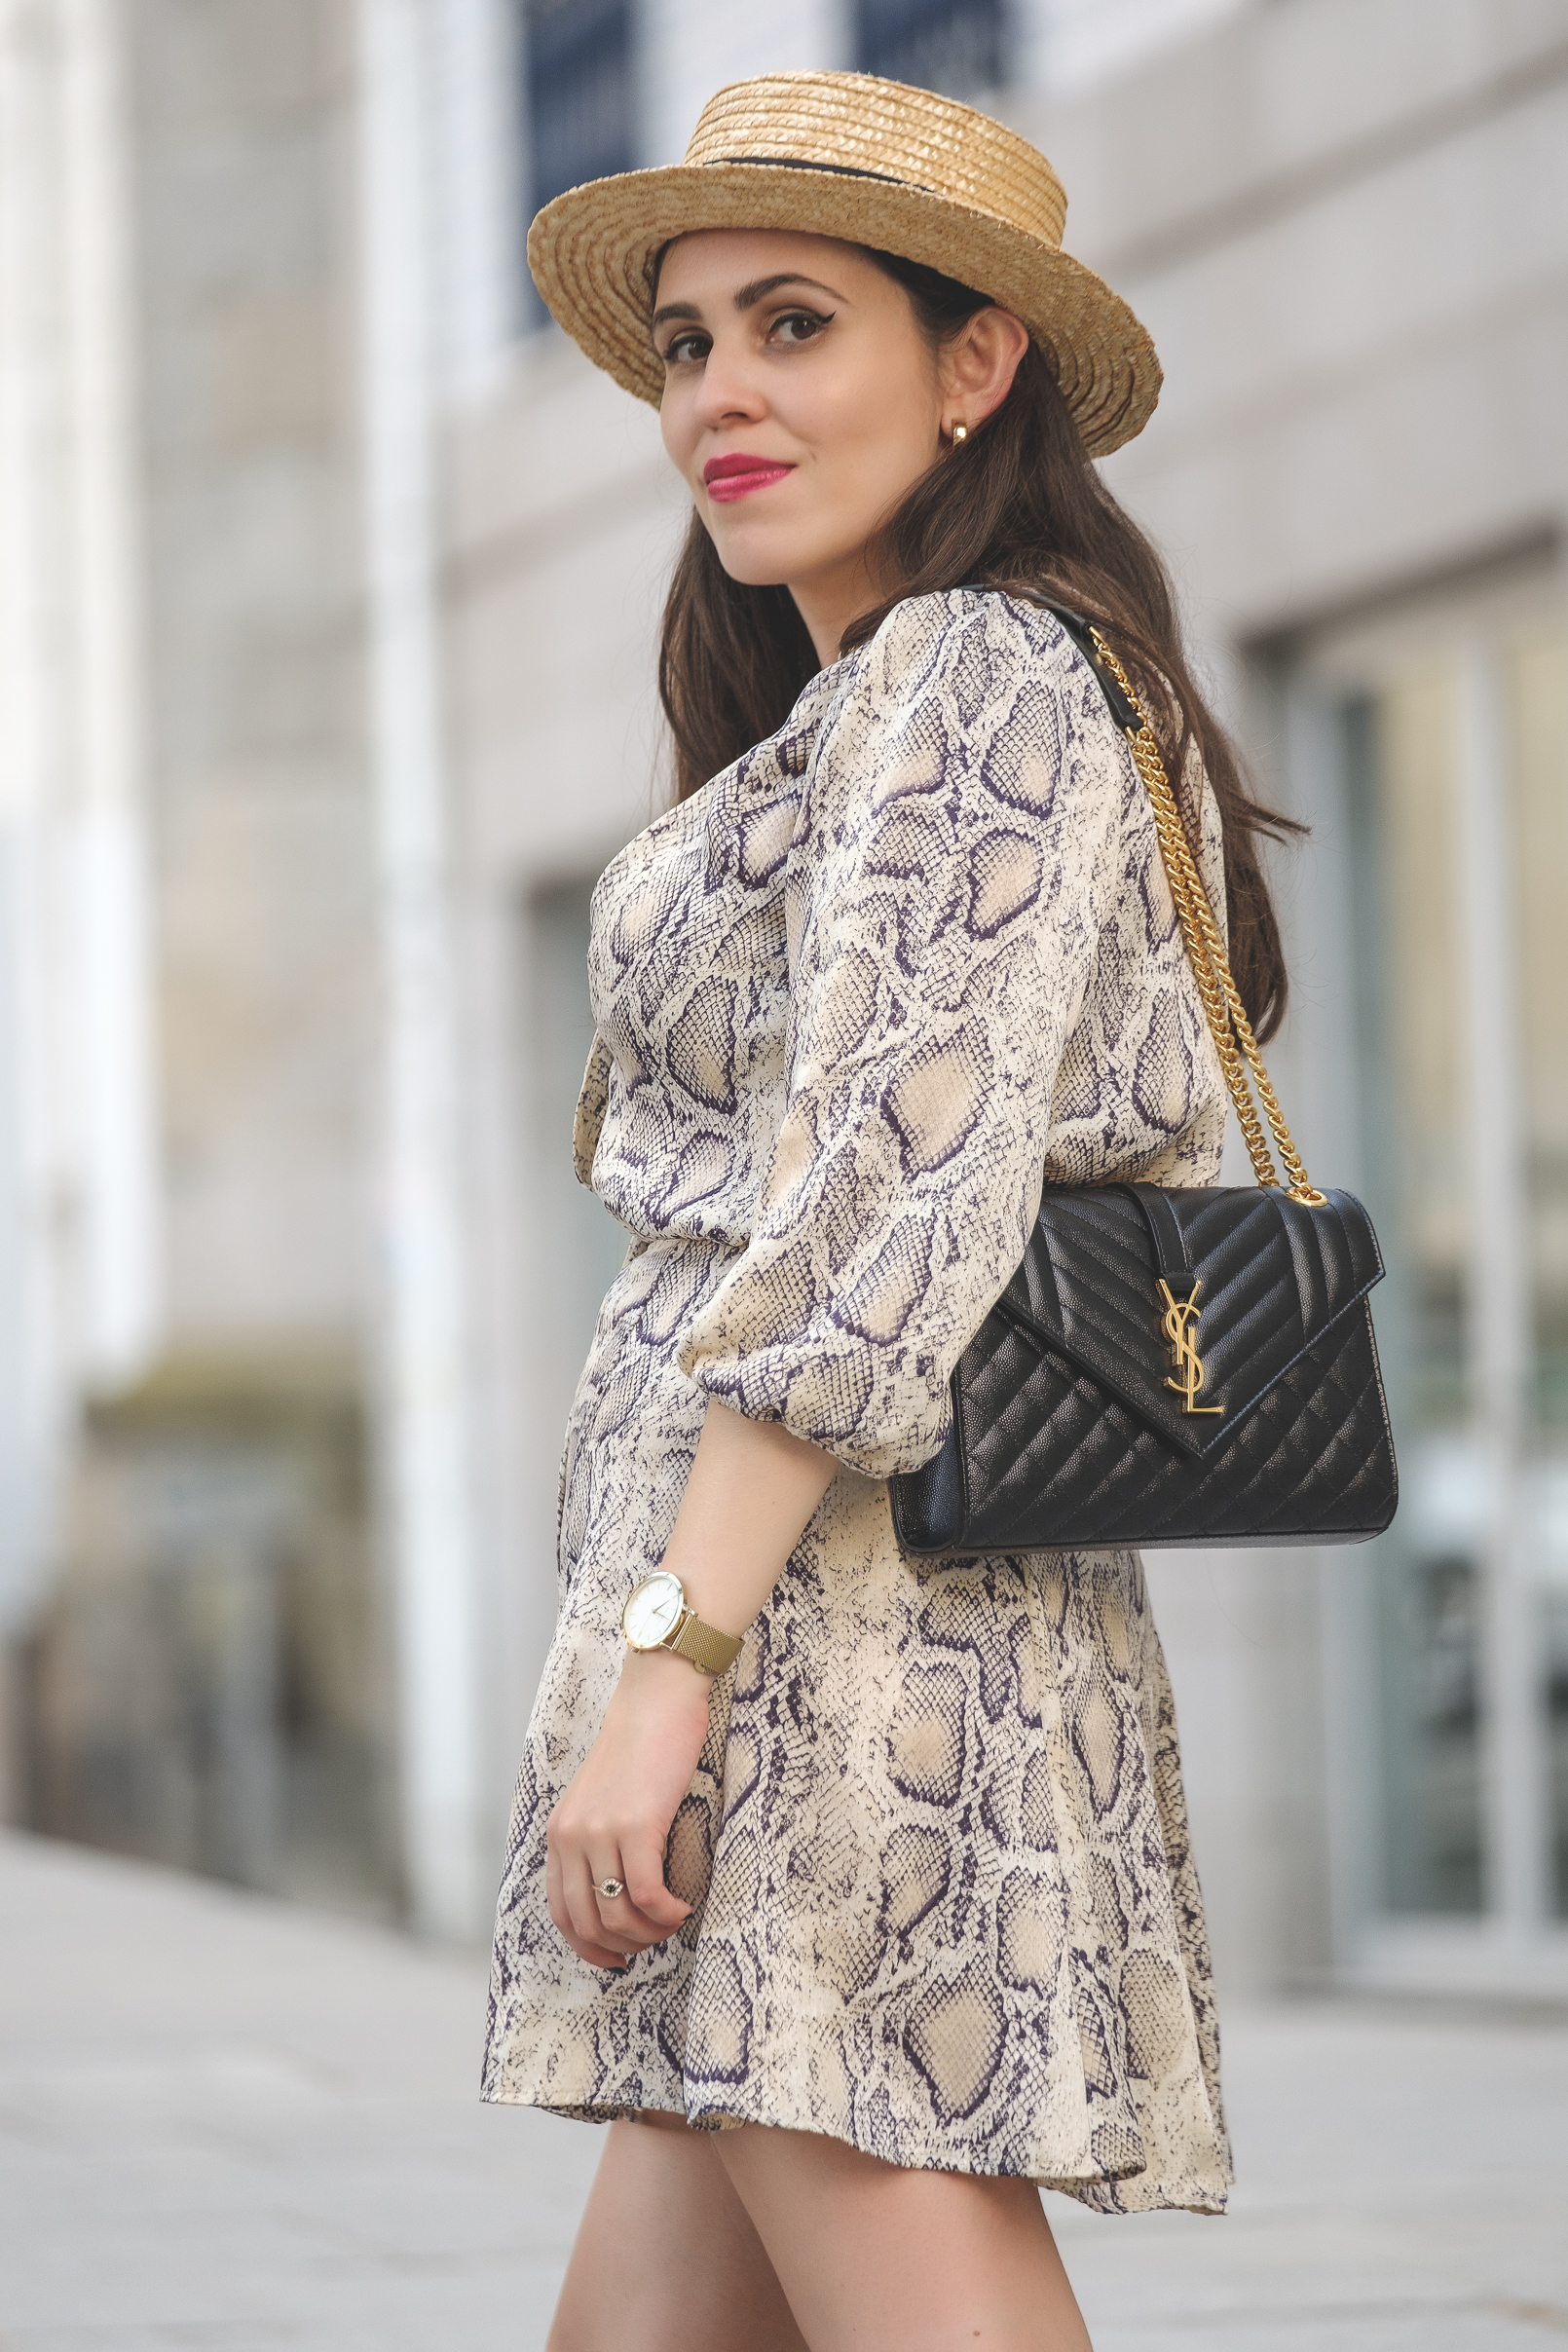 Le Fashionaire satin zara snake print dress envelope ysl bag black gold gold quartz mango earrings straw stradivarius hat 6442 EN satin zara snake print dress envelope ysl bag black gold gold quartz mango earrings straw stradivarius hat 6442 EN